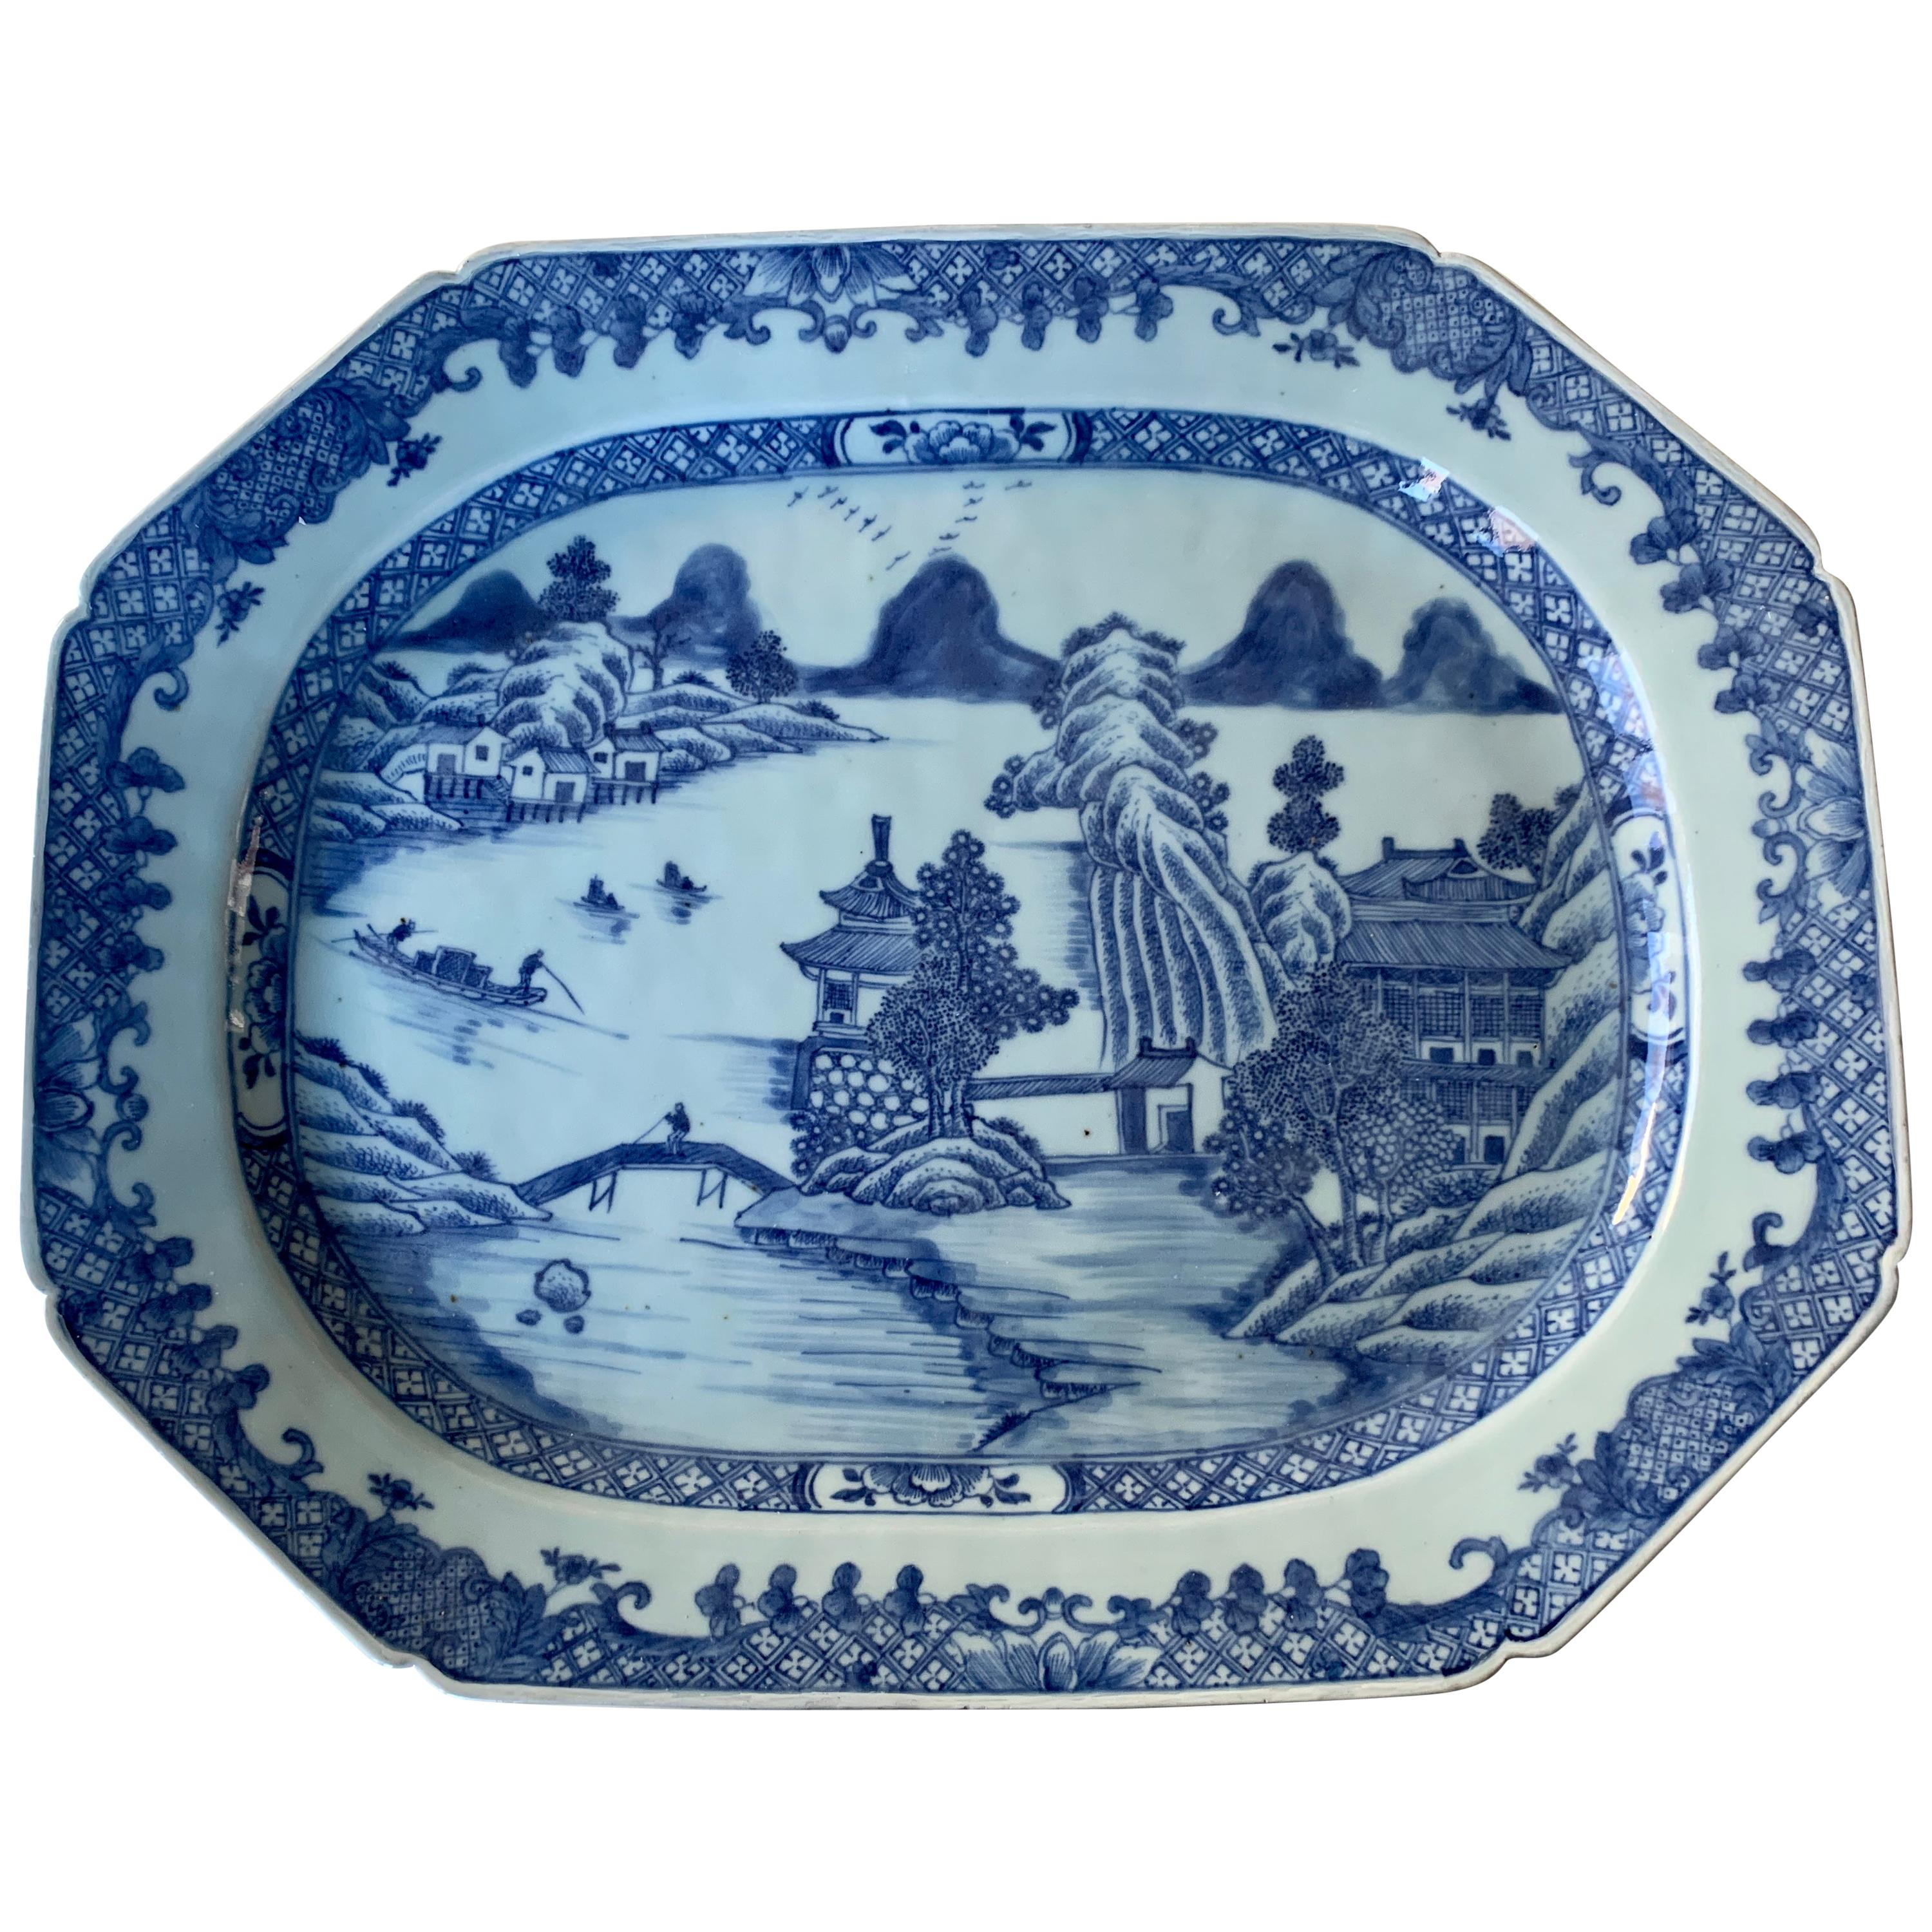 Large Blue and White Hand-Painted Chinese Porcelain Platter, 18th Century c-1780